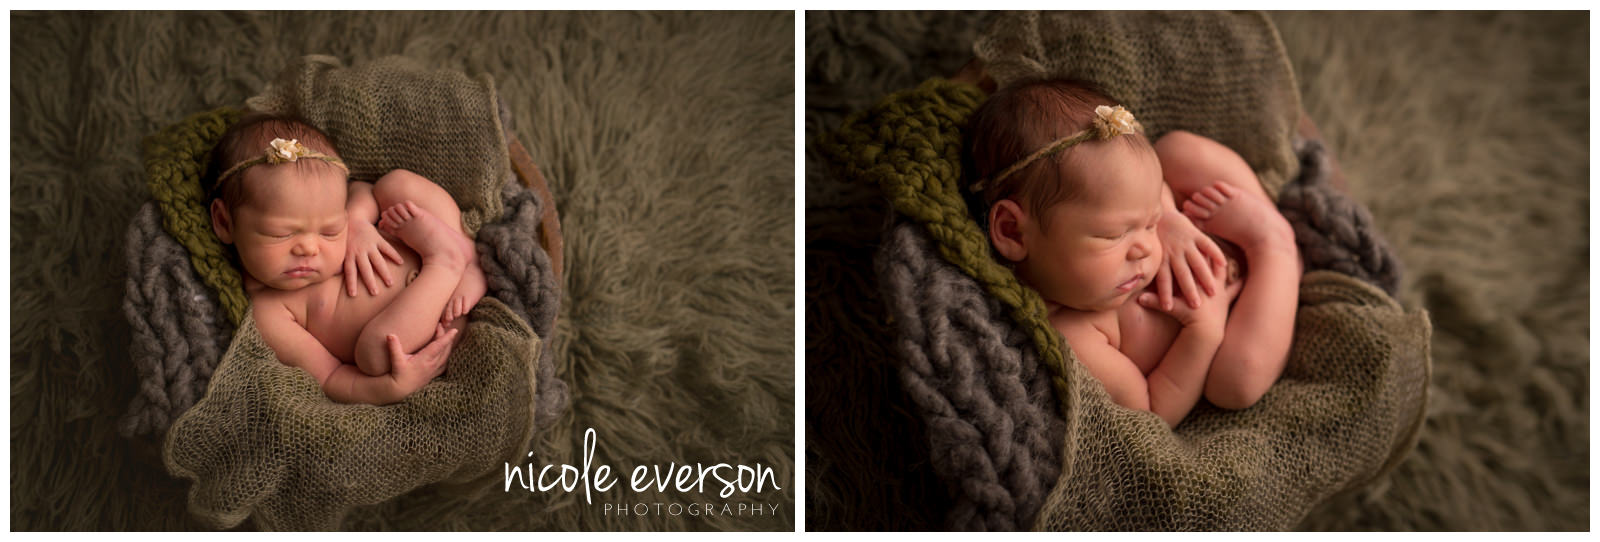 brand new baby photographed by Nicole Everson Photography